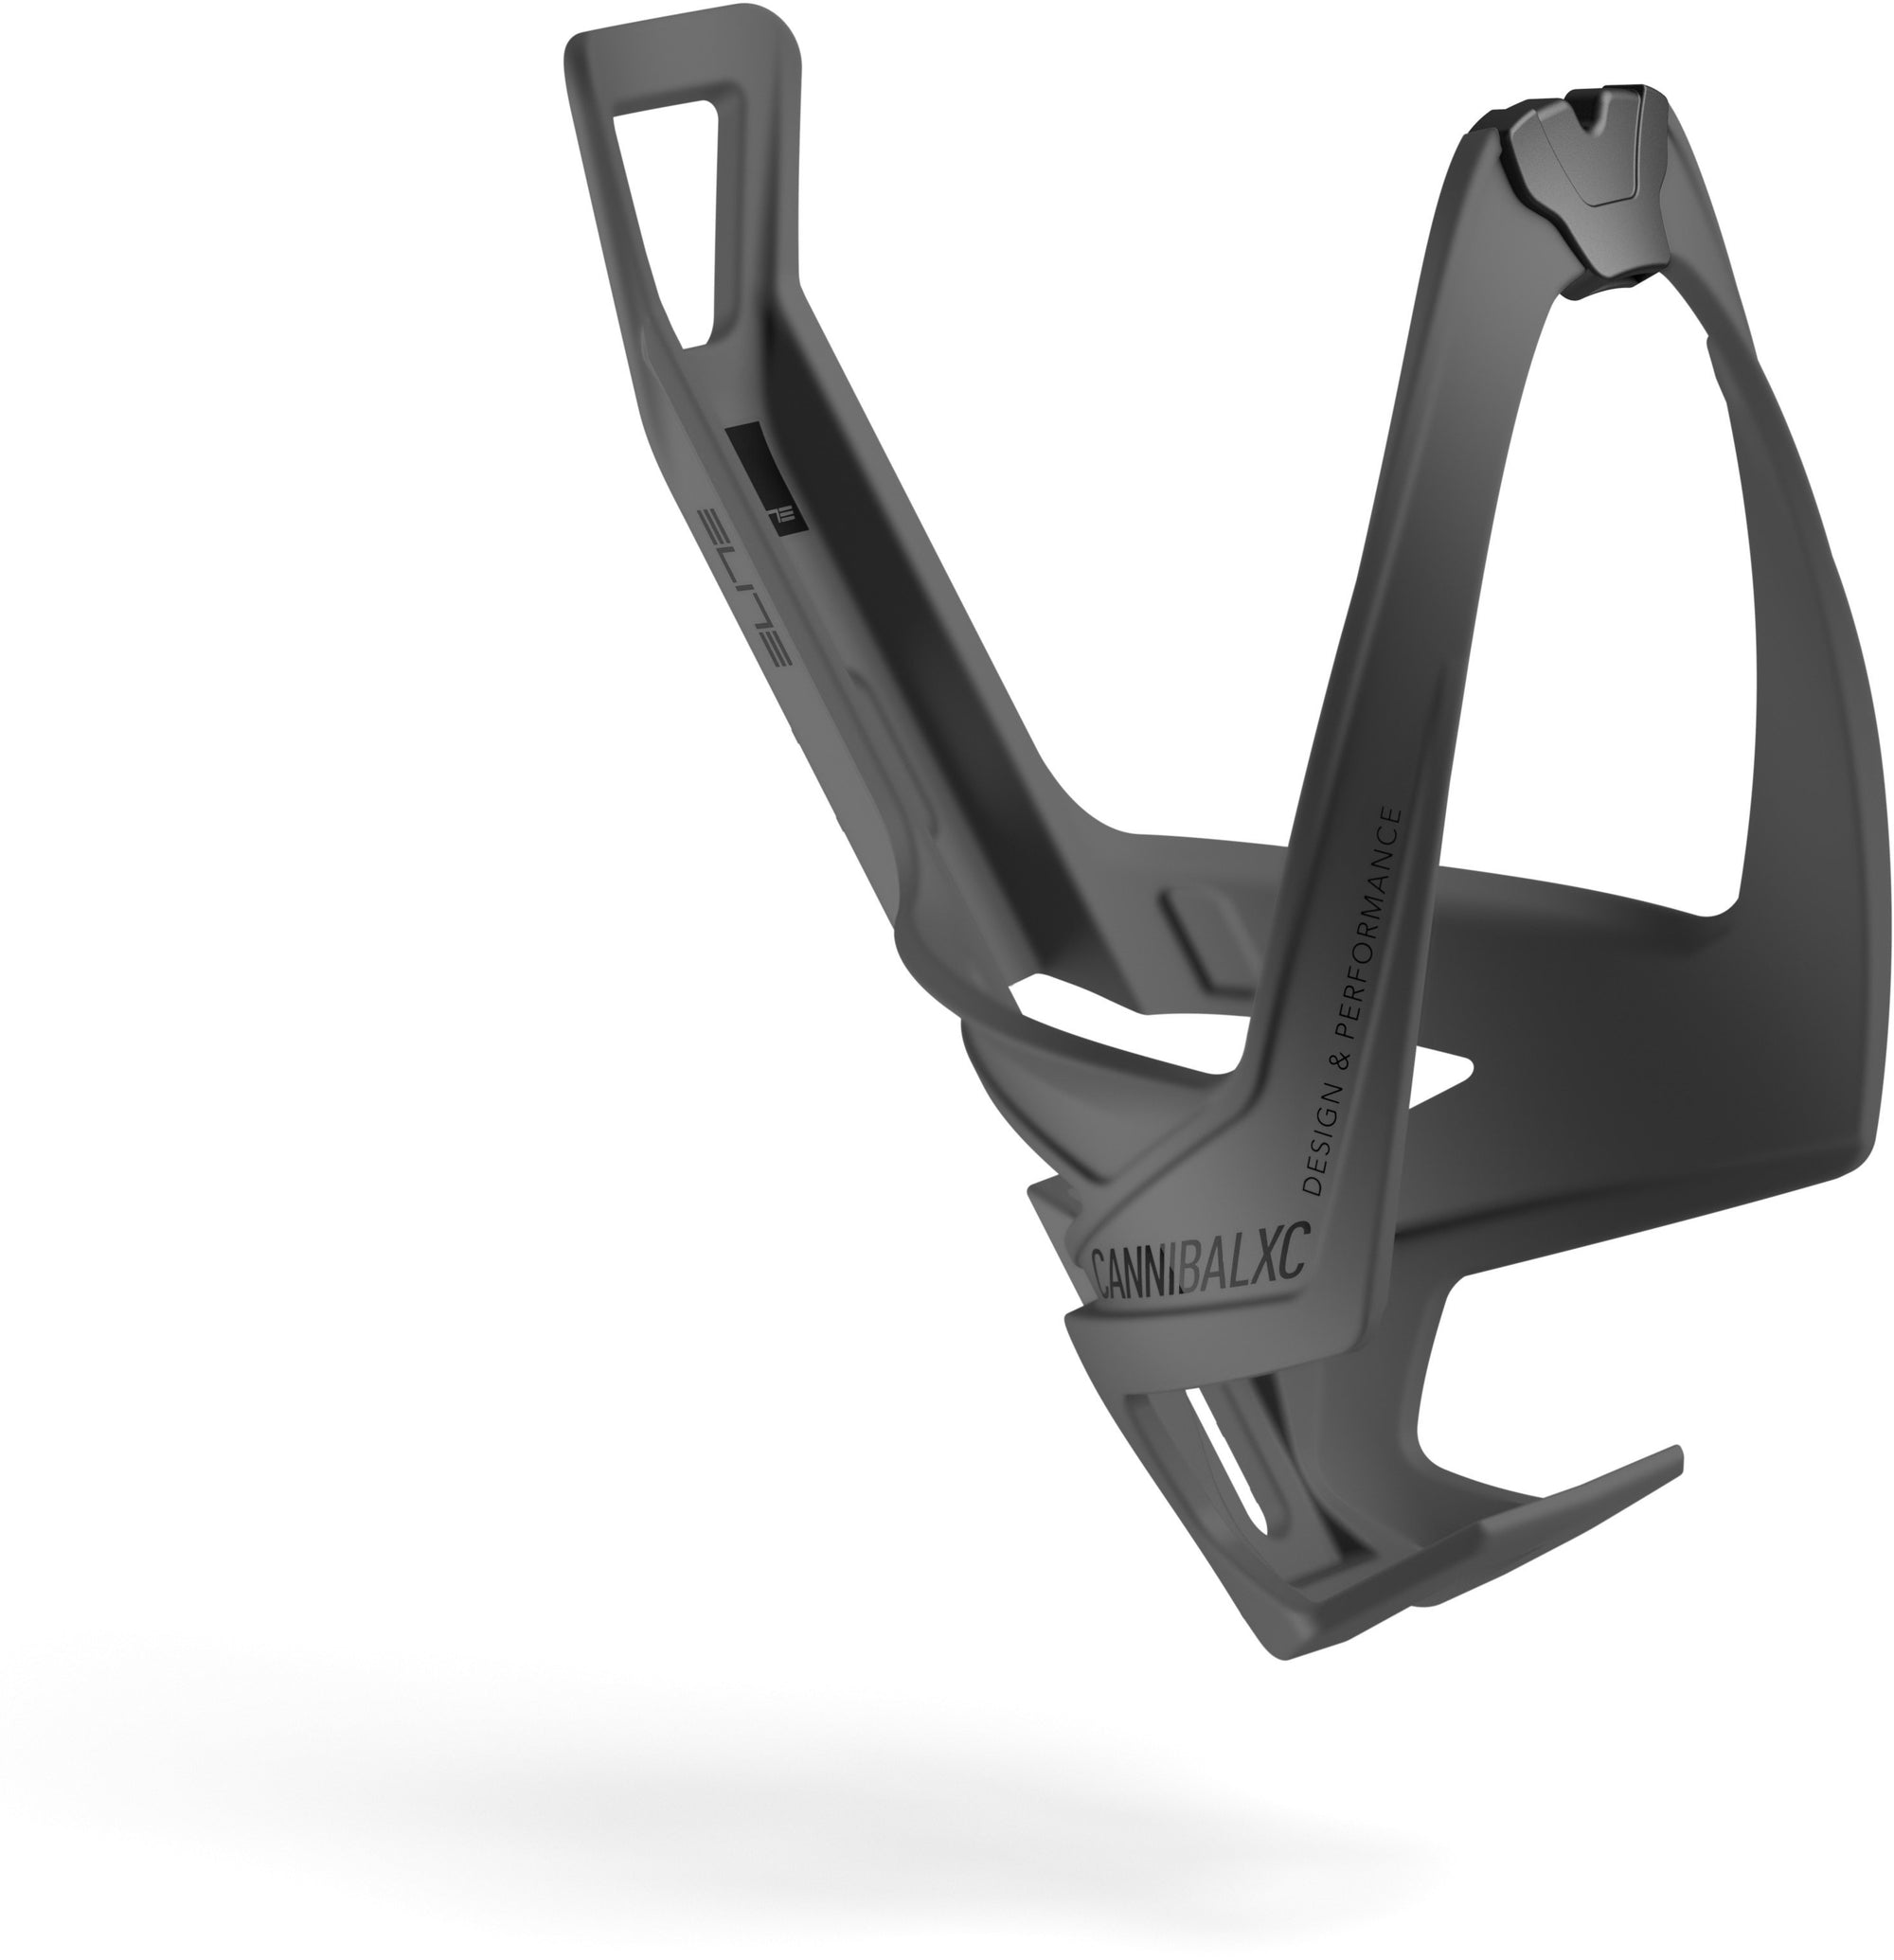 ELITE Bottle Cages Stealth Elite Cannibal XC bottle cage